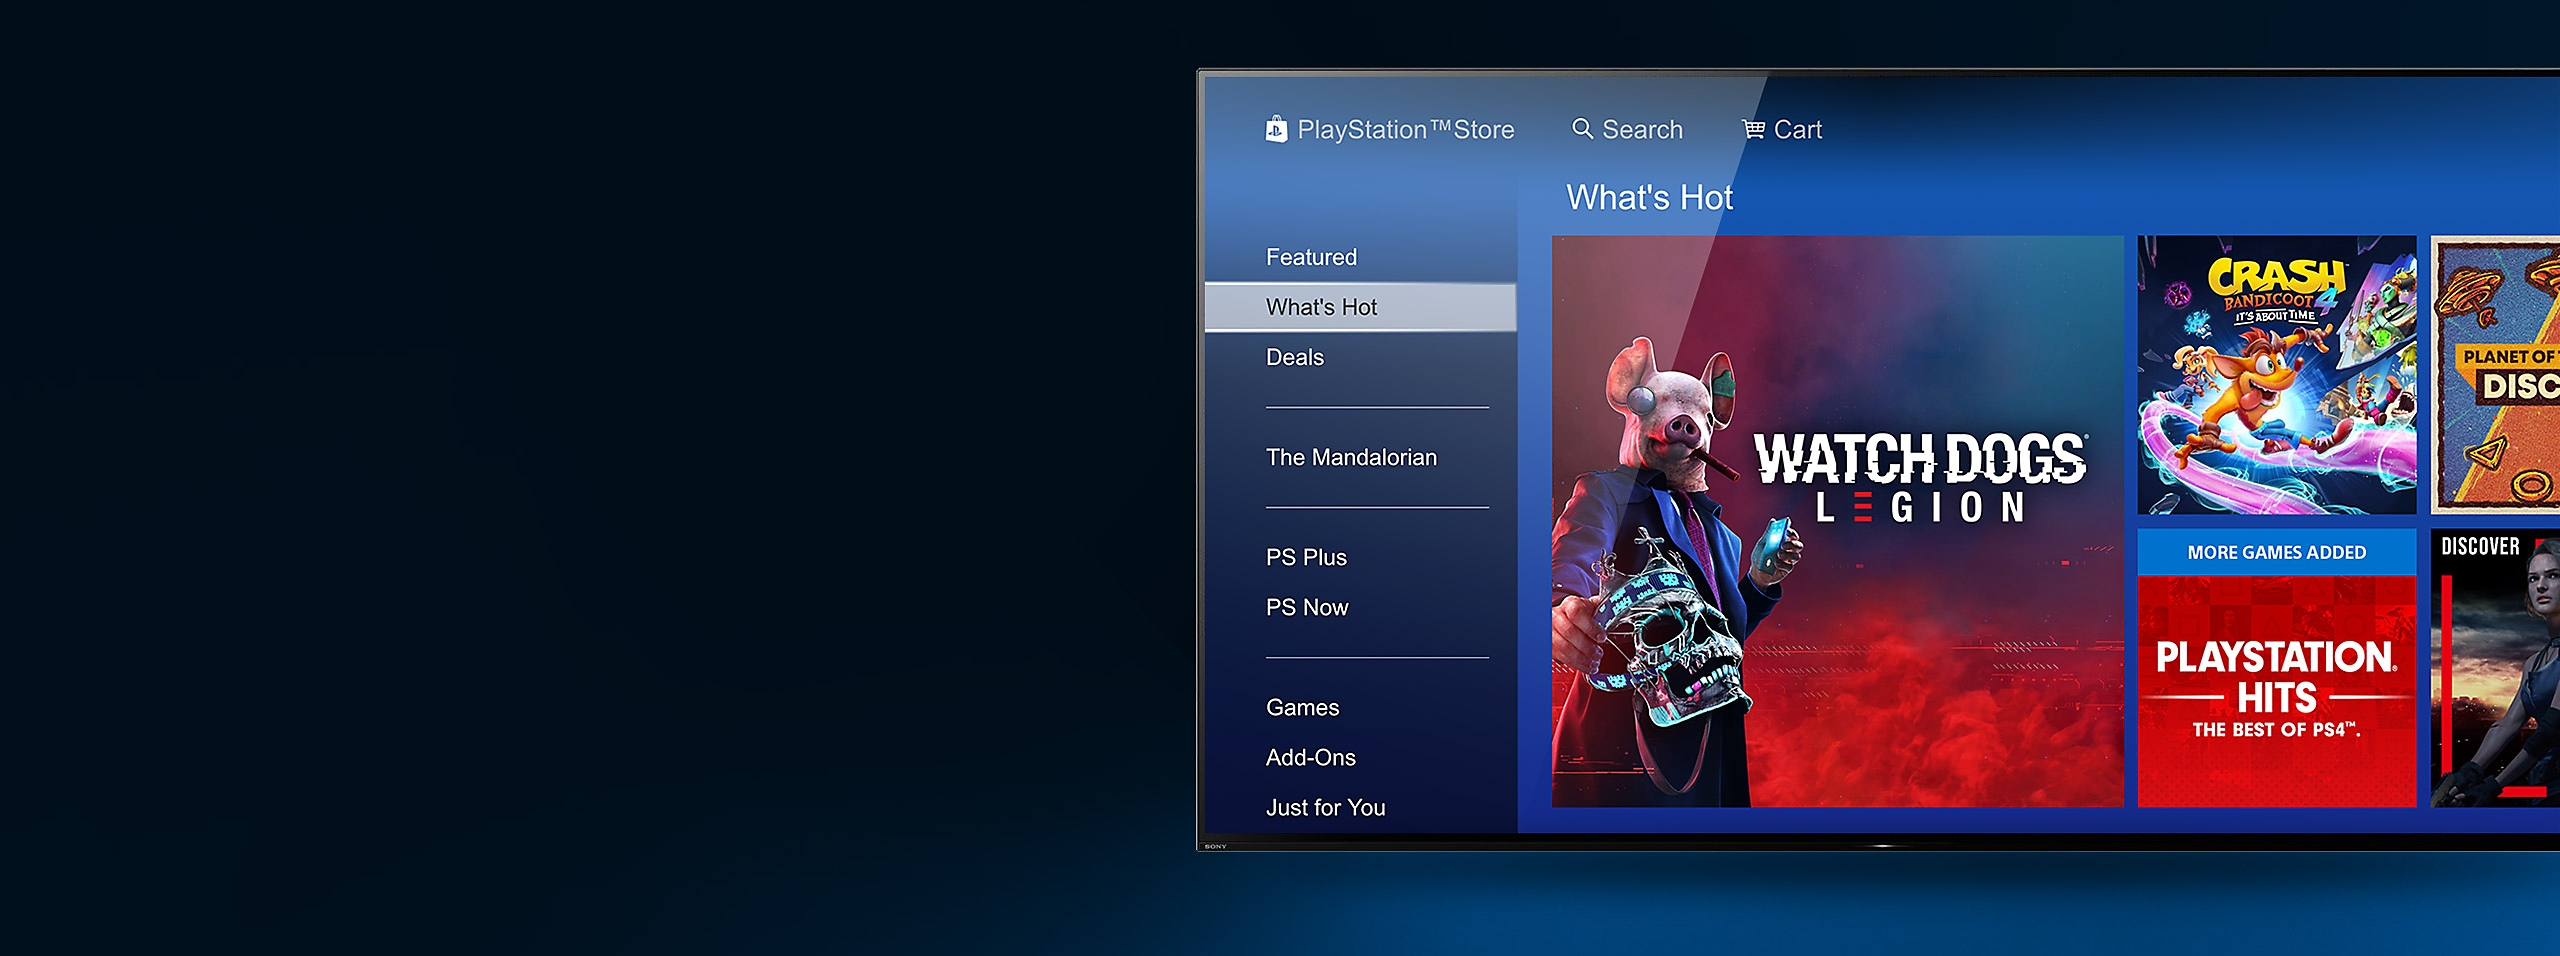 PlayStation Store - Page Banner Art